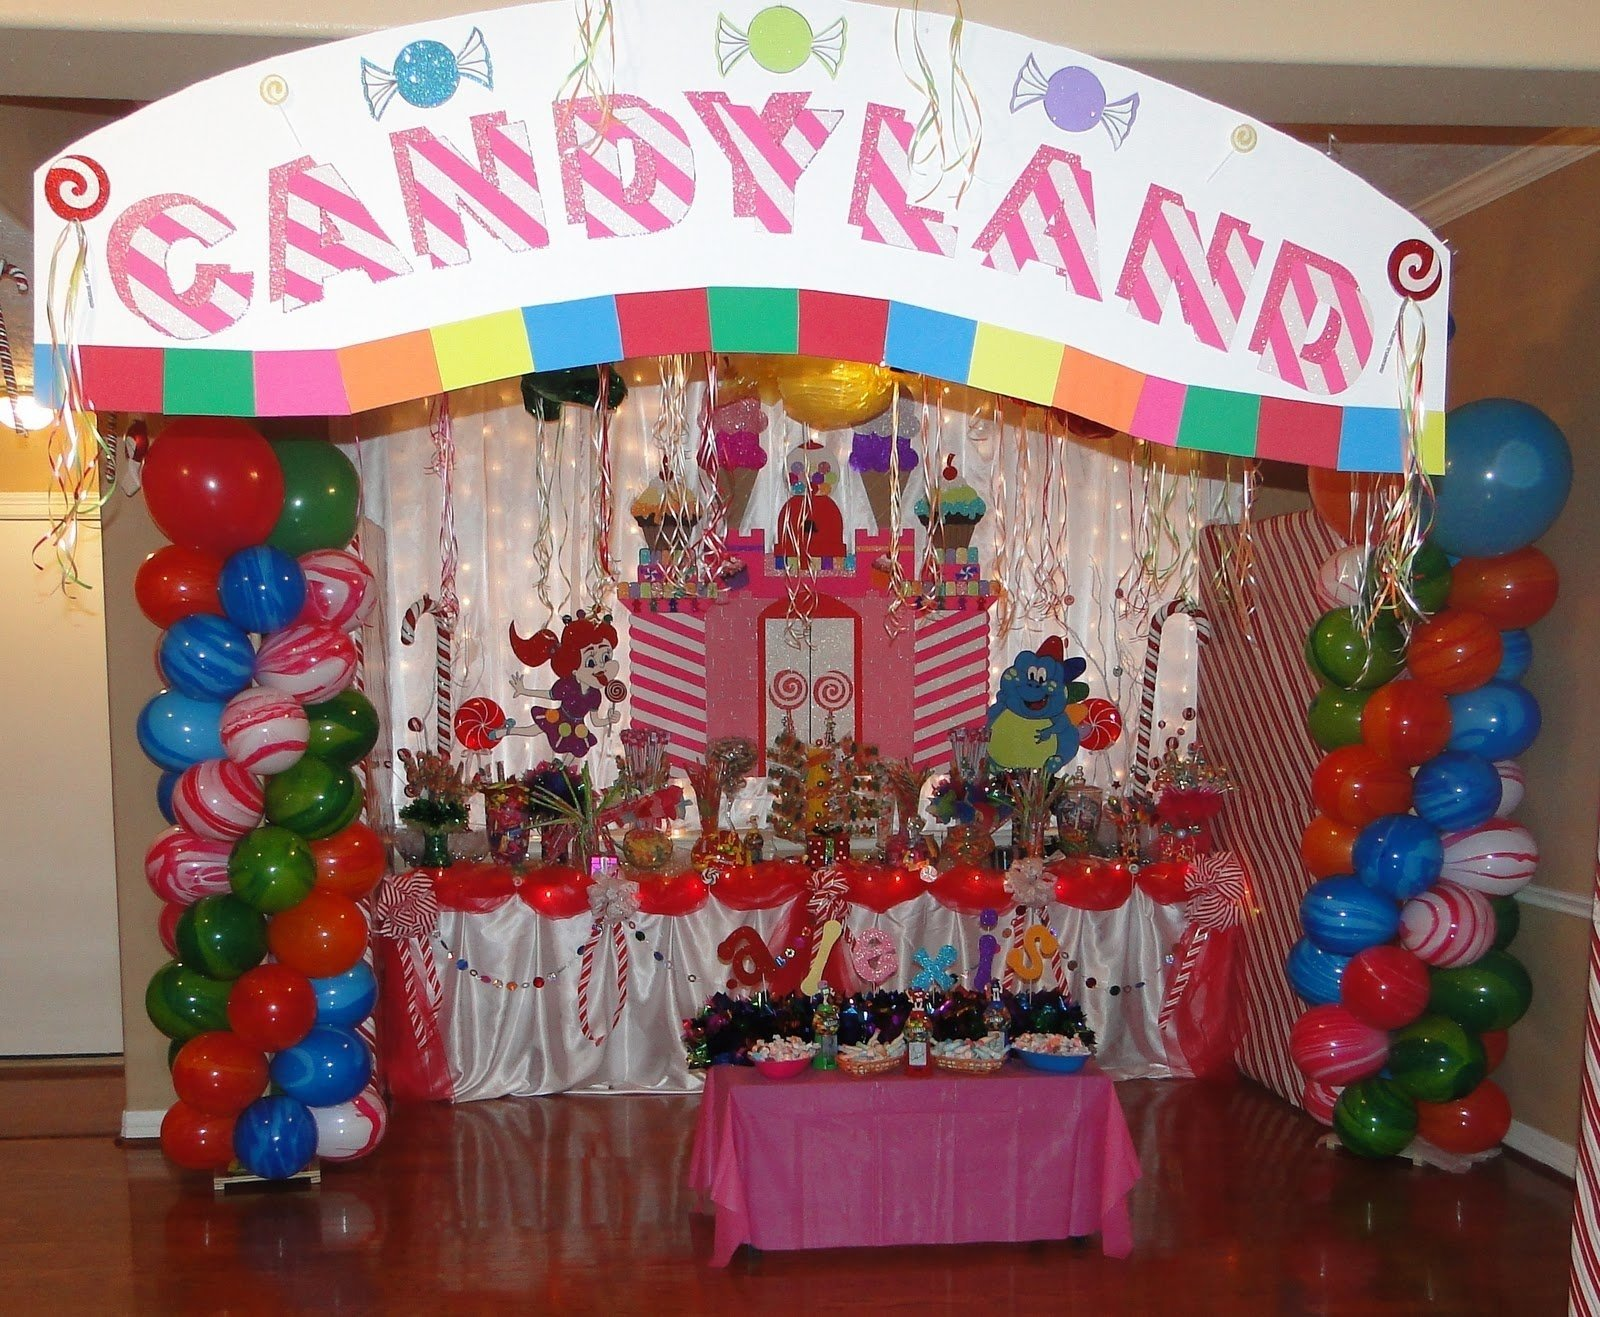 10 Famous Candy Themed Birthday Party Ideas candyland birthday party all in home decor ideas candyland party